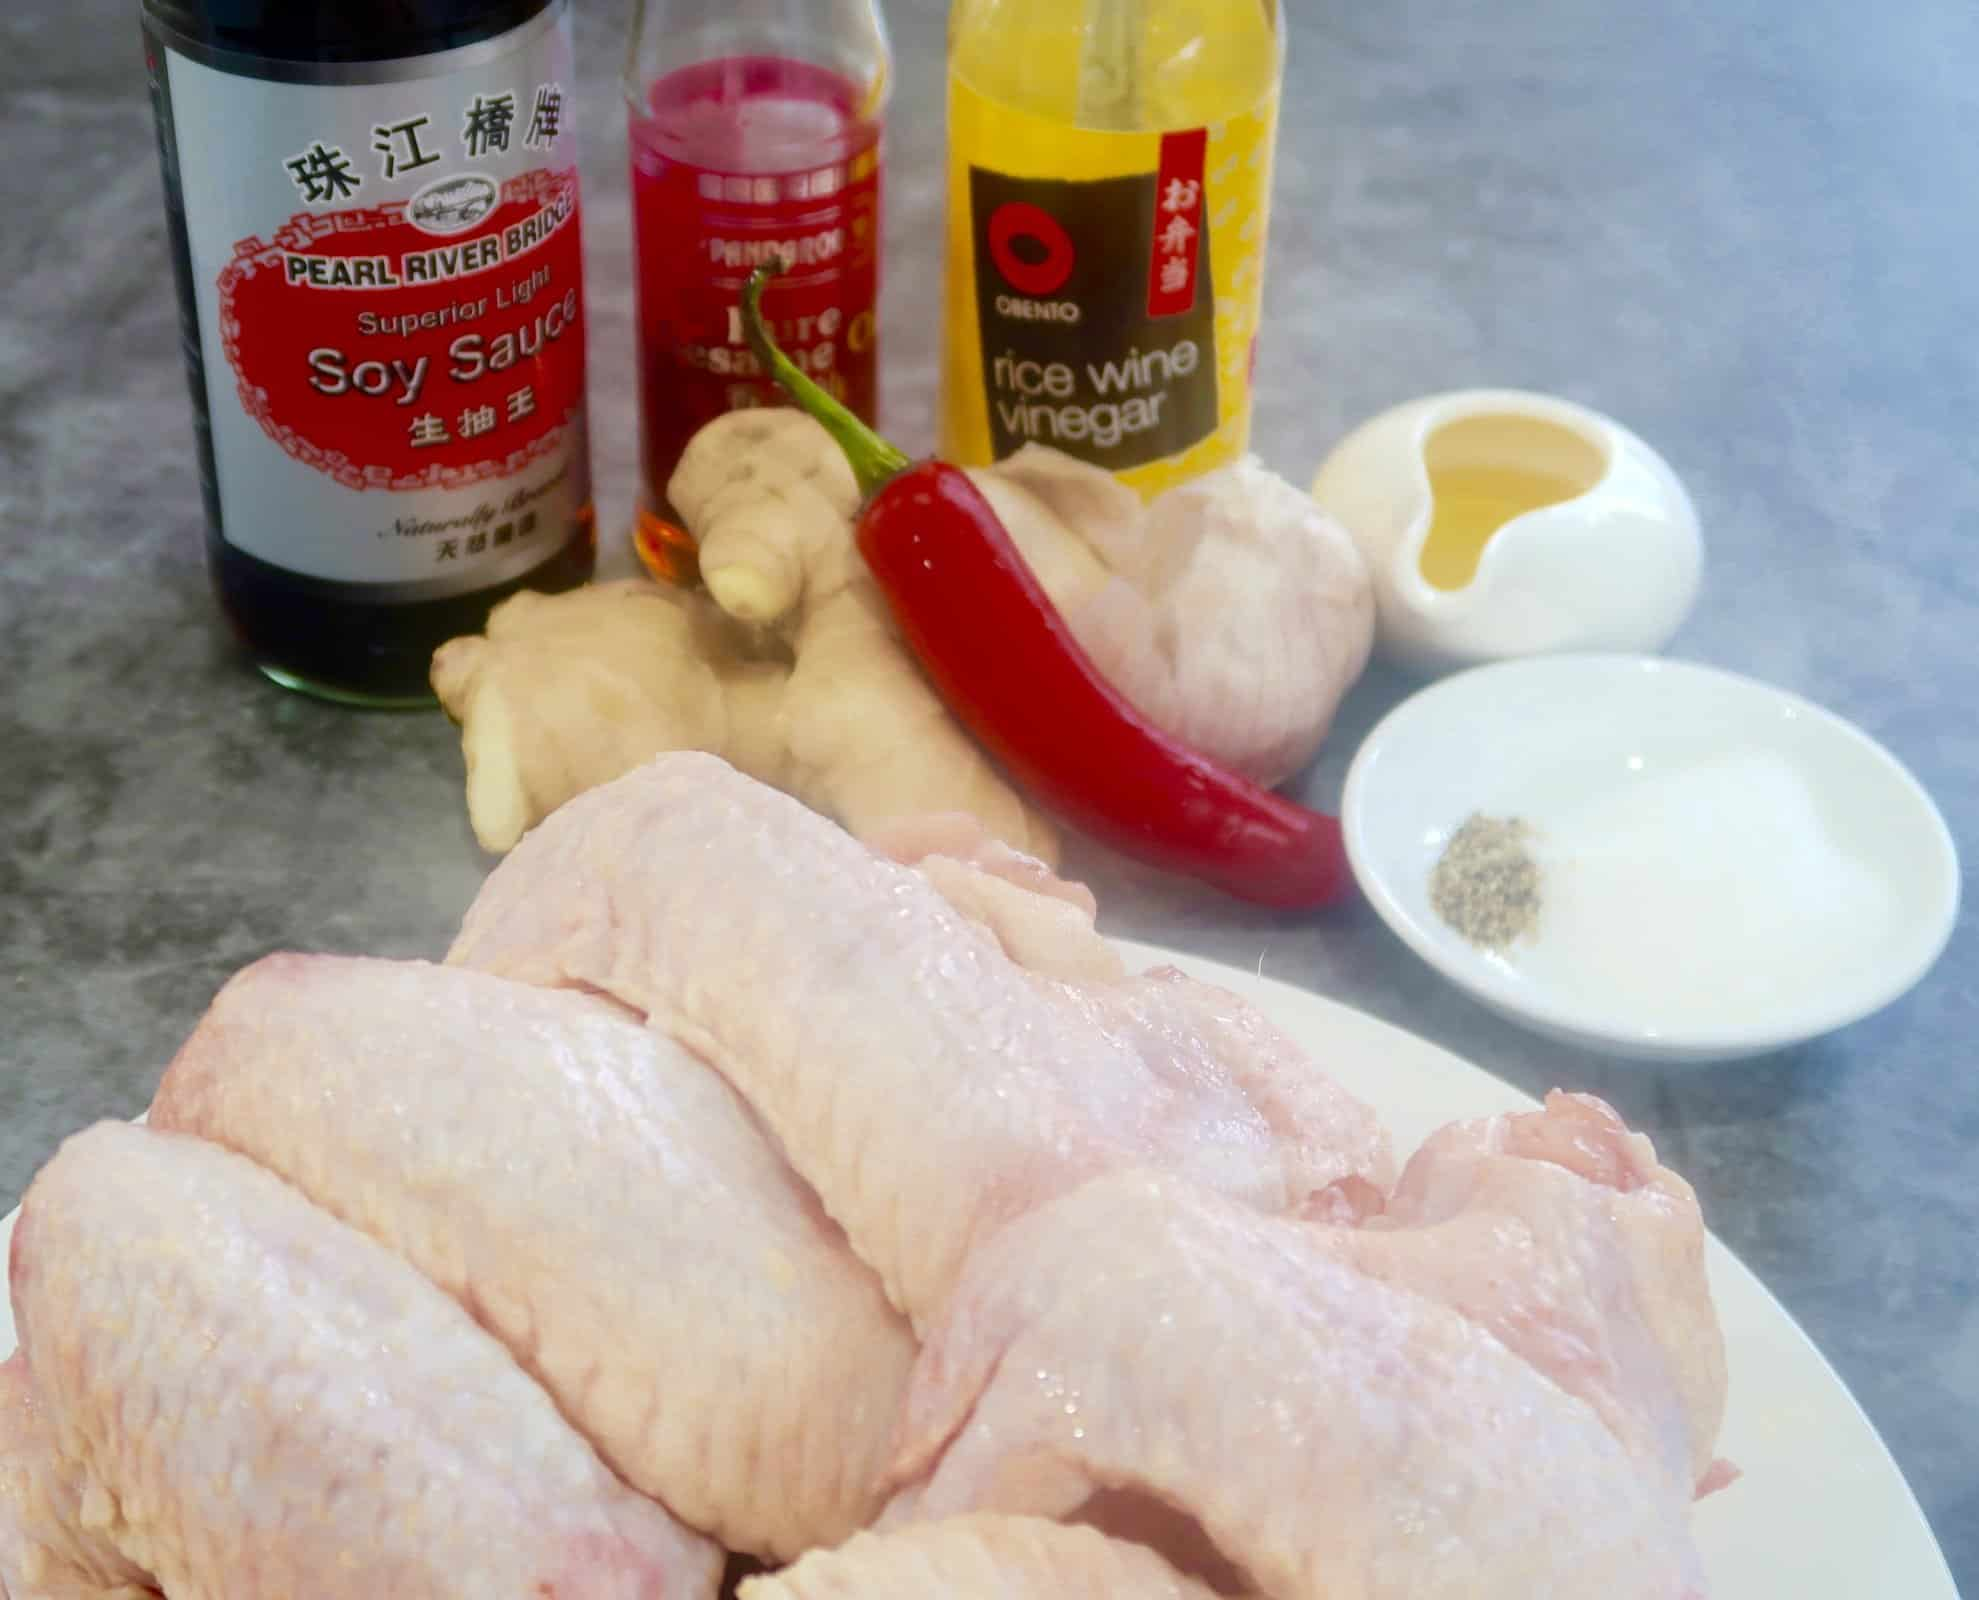 oven baked chicken wings with ginger garlic dressing ingredients ready to cook